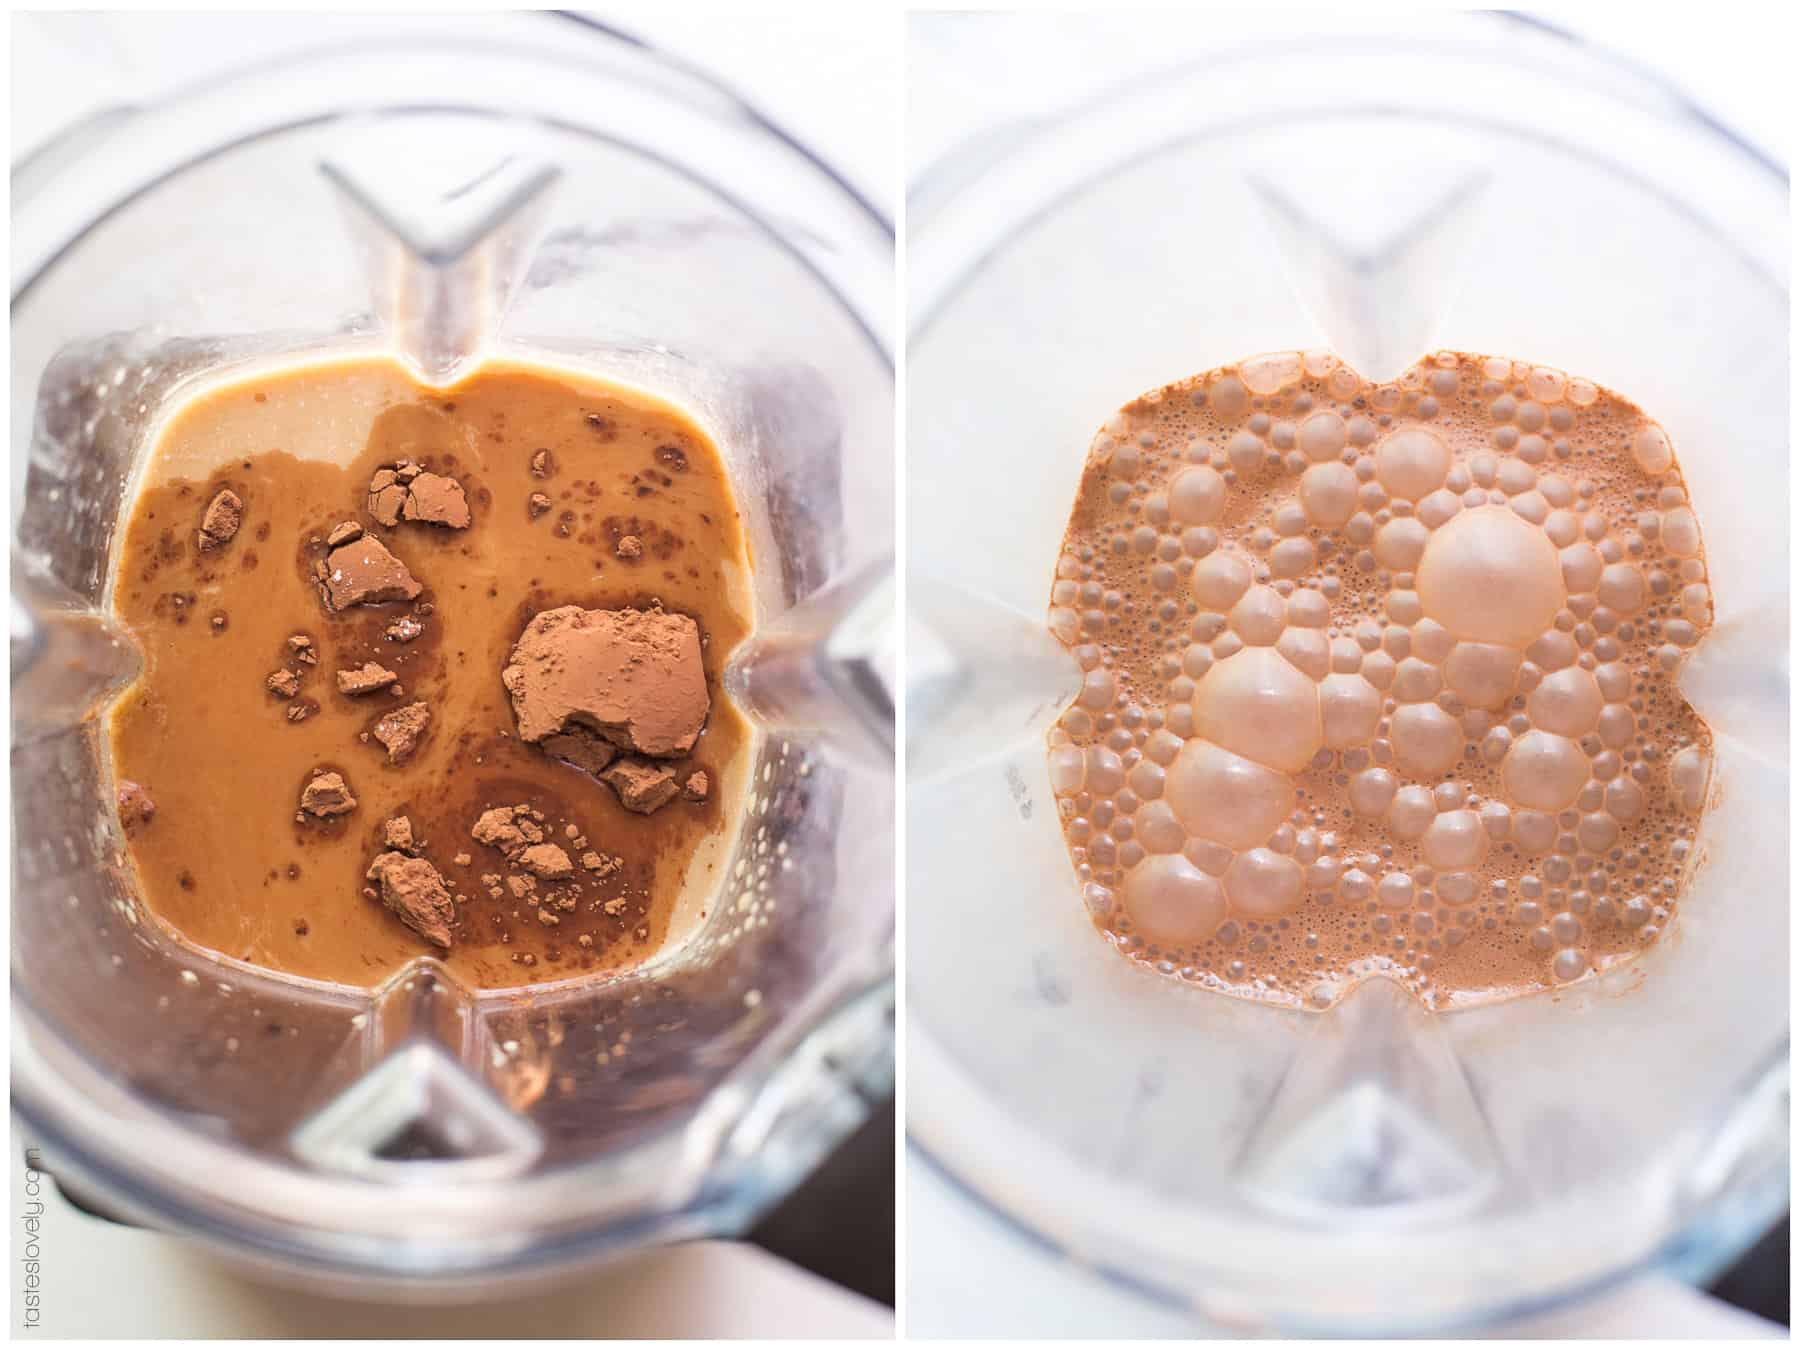 The ingredients of a mocha in a blender